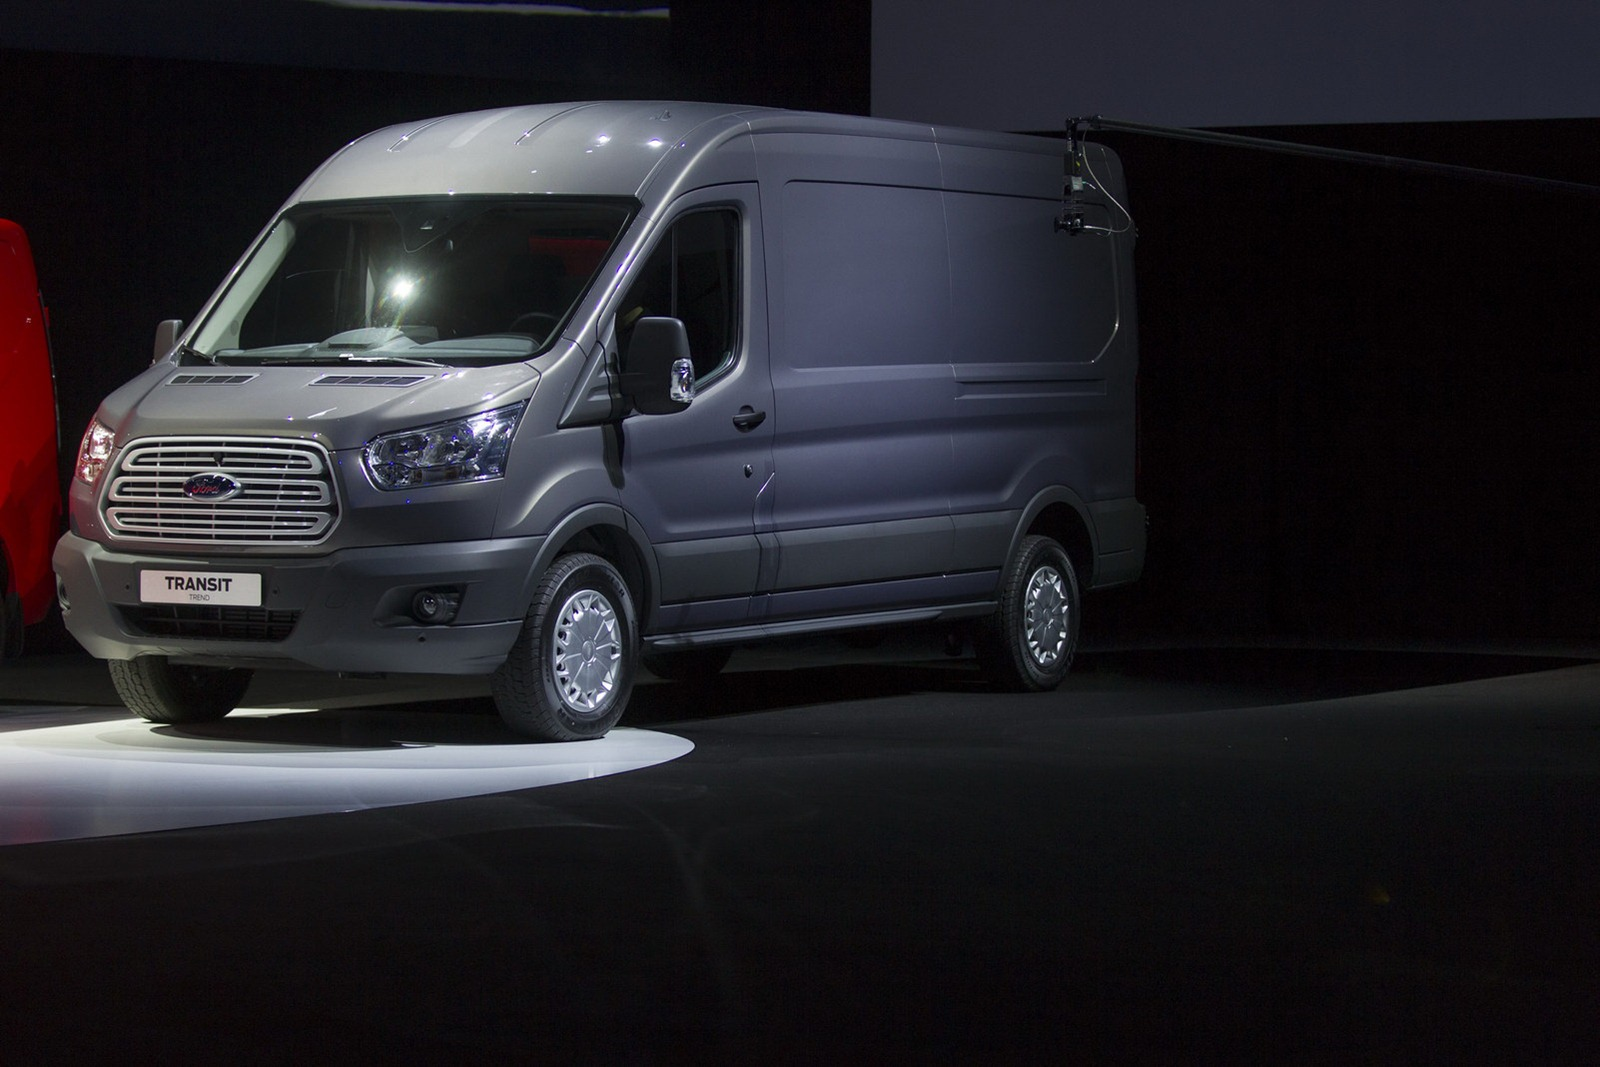 """ event officially introduced the new generation 2014 model Transit"